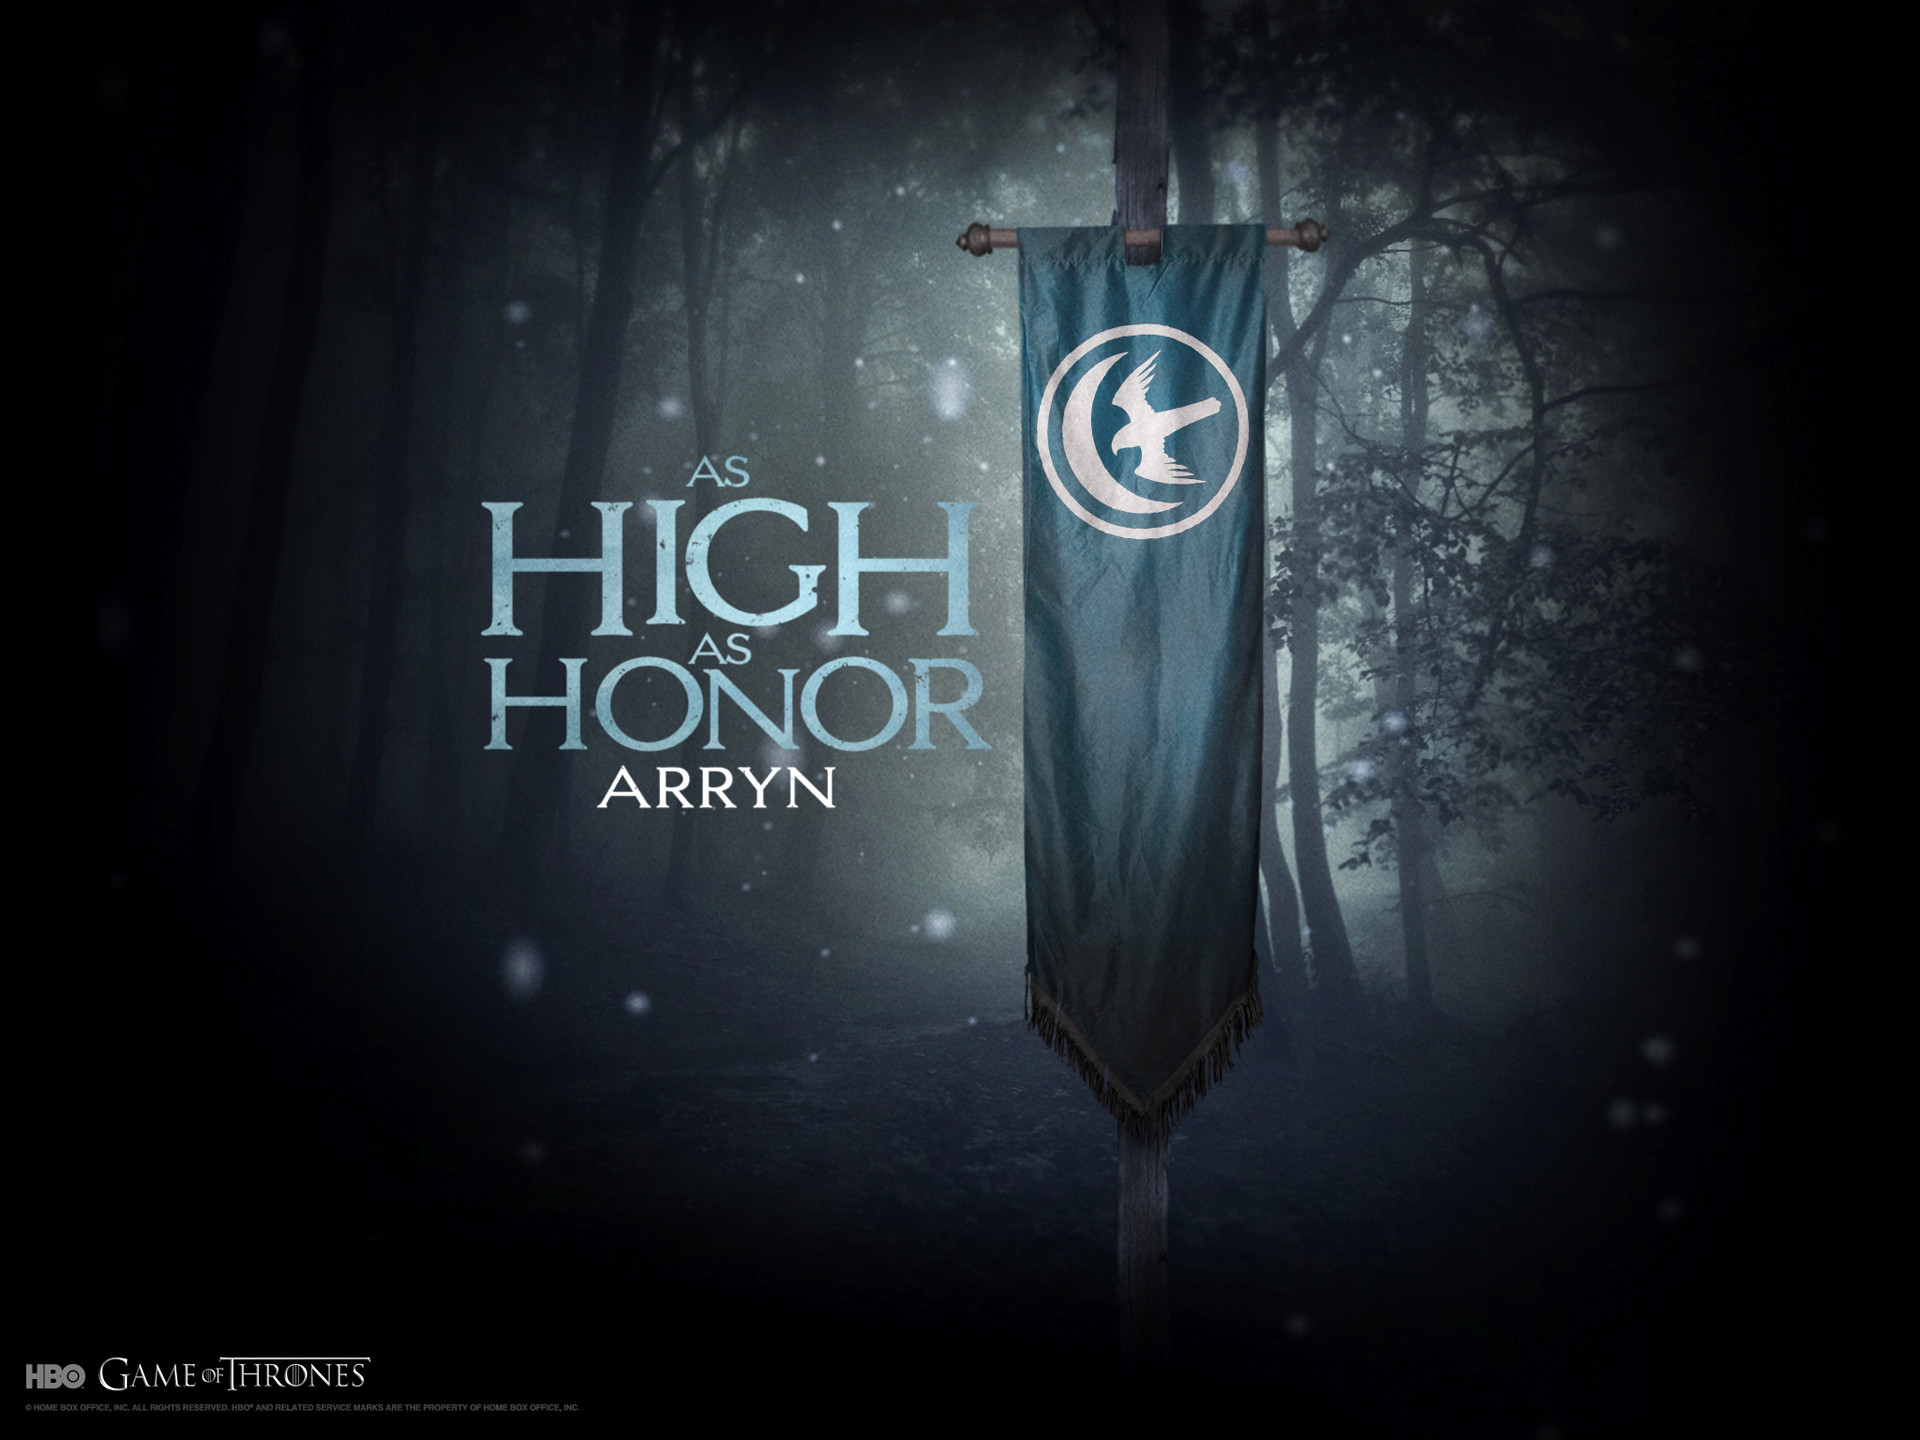 1920x1440 A Song of Ice and Fire Game of Thrones House Arryn TV series banner  wallpaper ( / Wallbase.